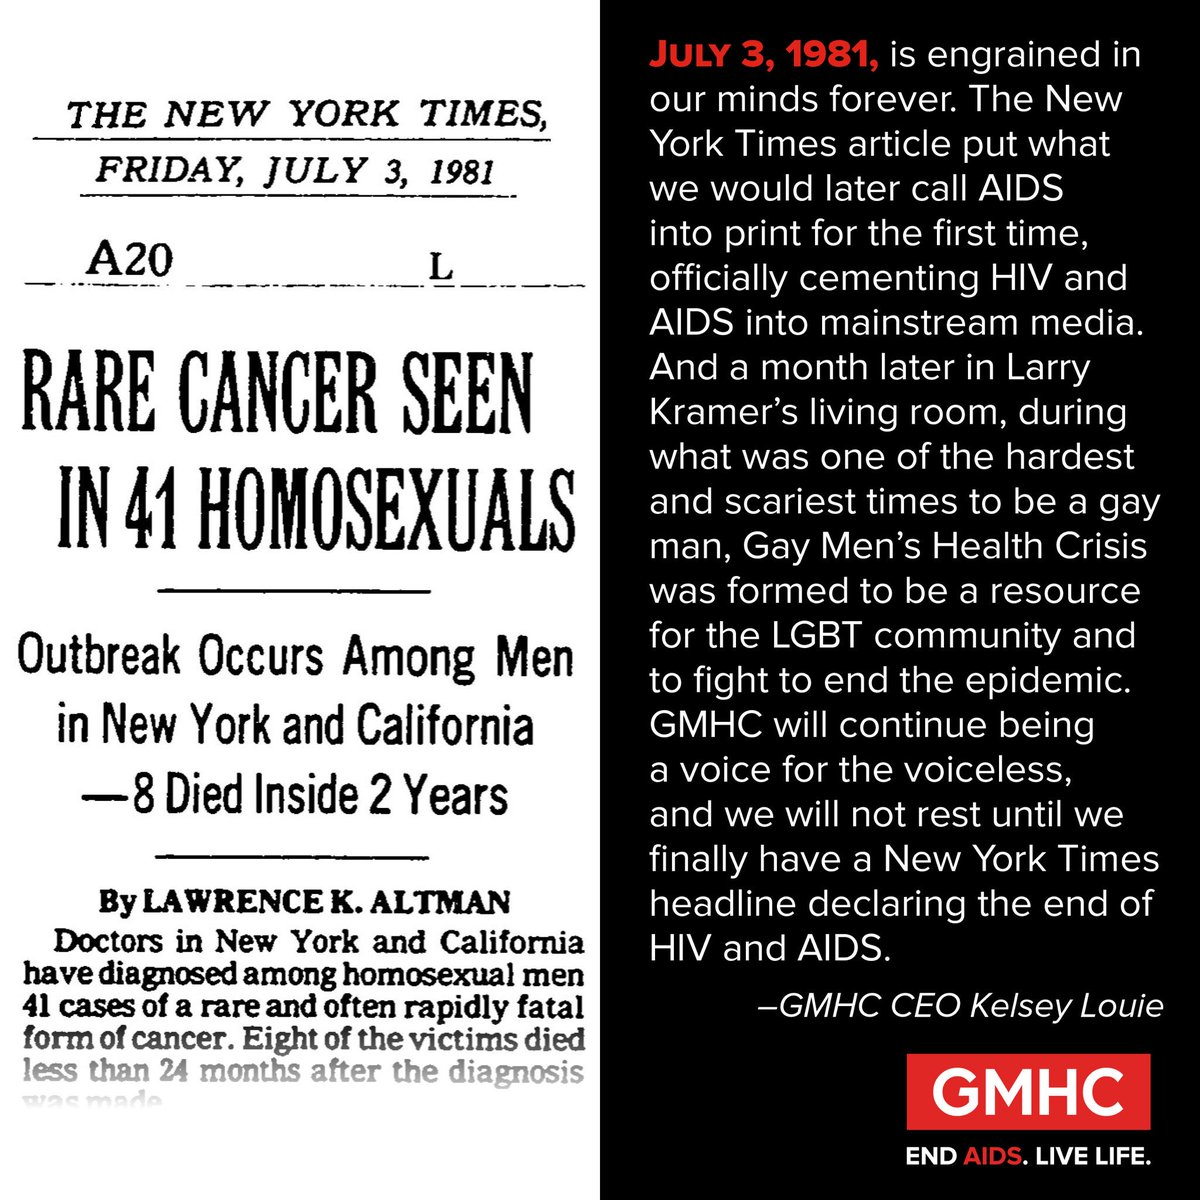 Exactly 35 years today,@nytimes cemented #HIV & #AIDS into mainstream media. Please RT. We must End AIDS & Live Life https://t.co/ZzaLhDm7i8